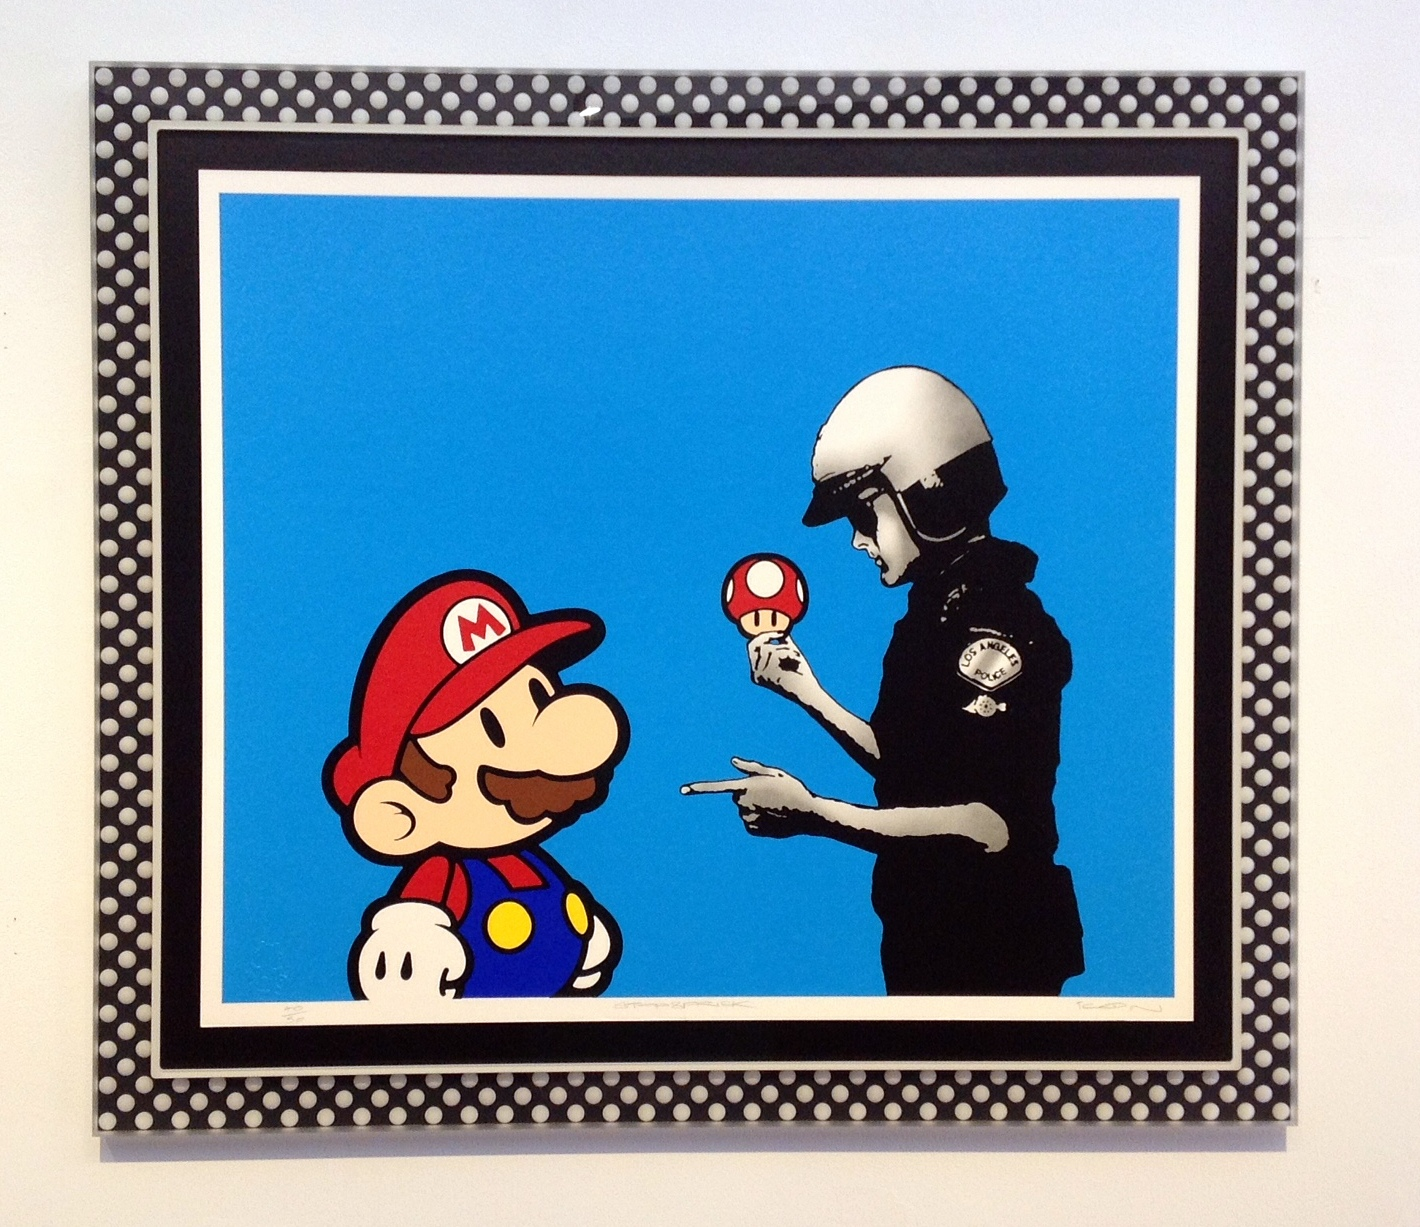 Black and white polka dots for Mario